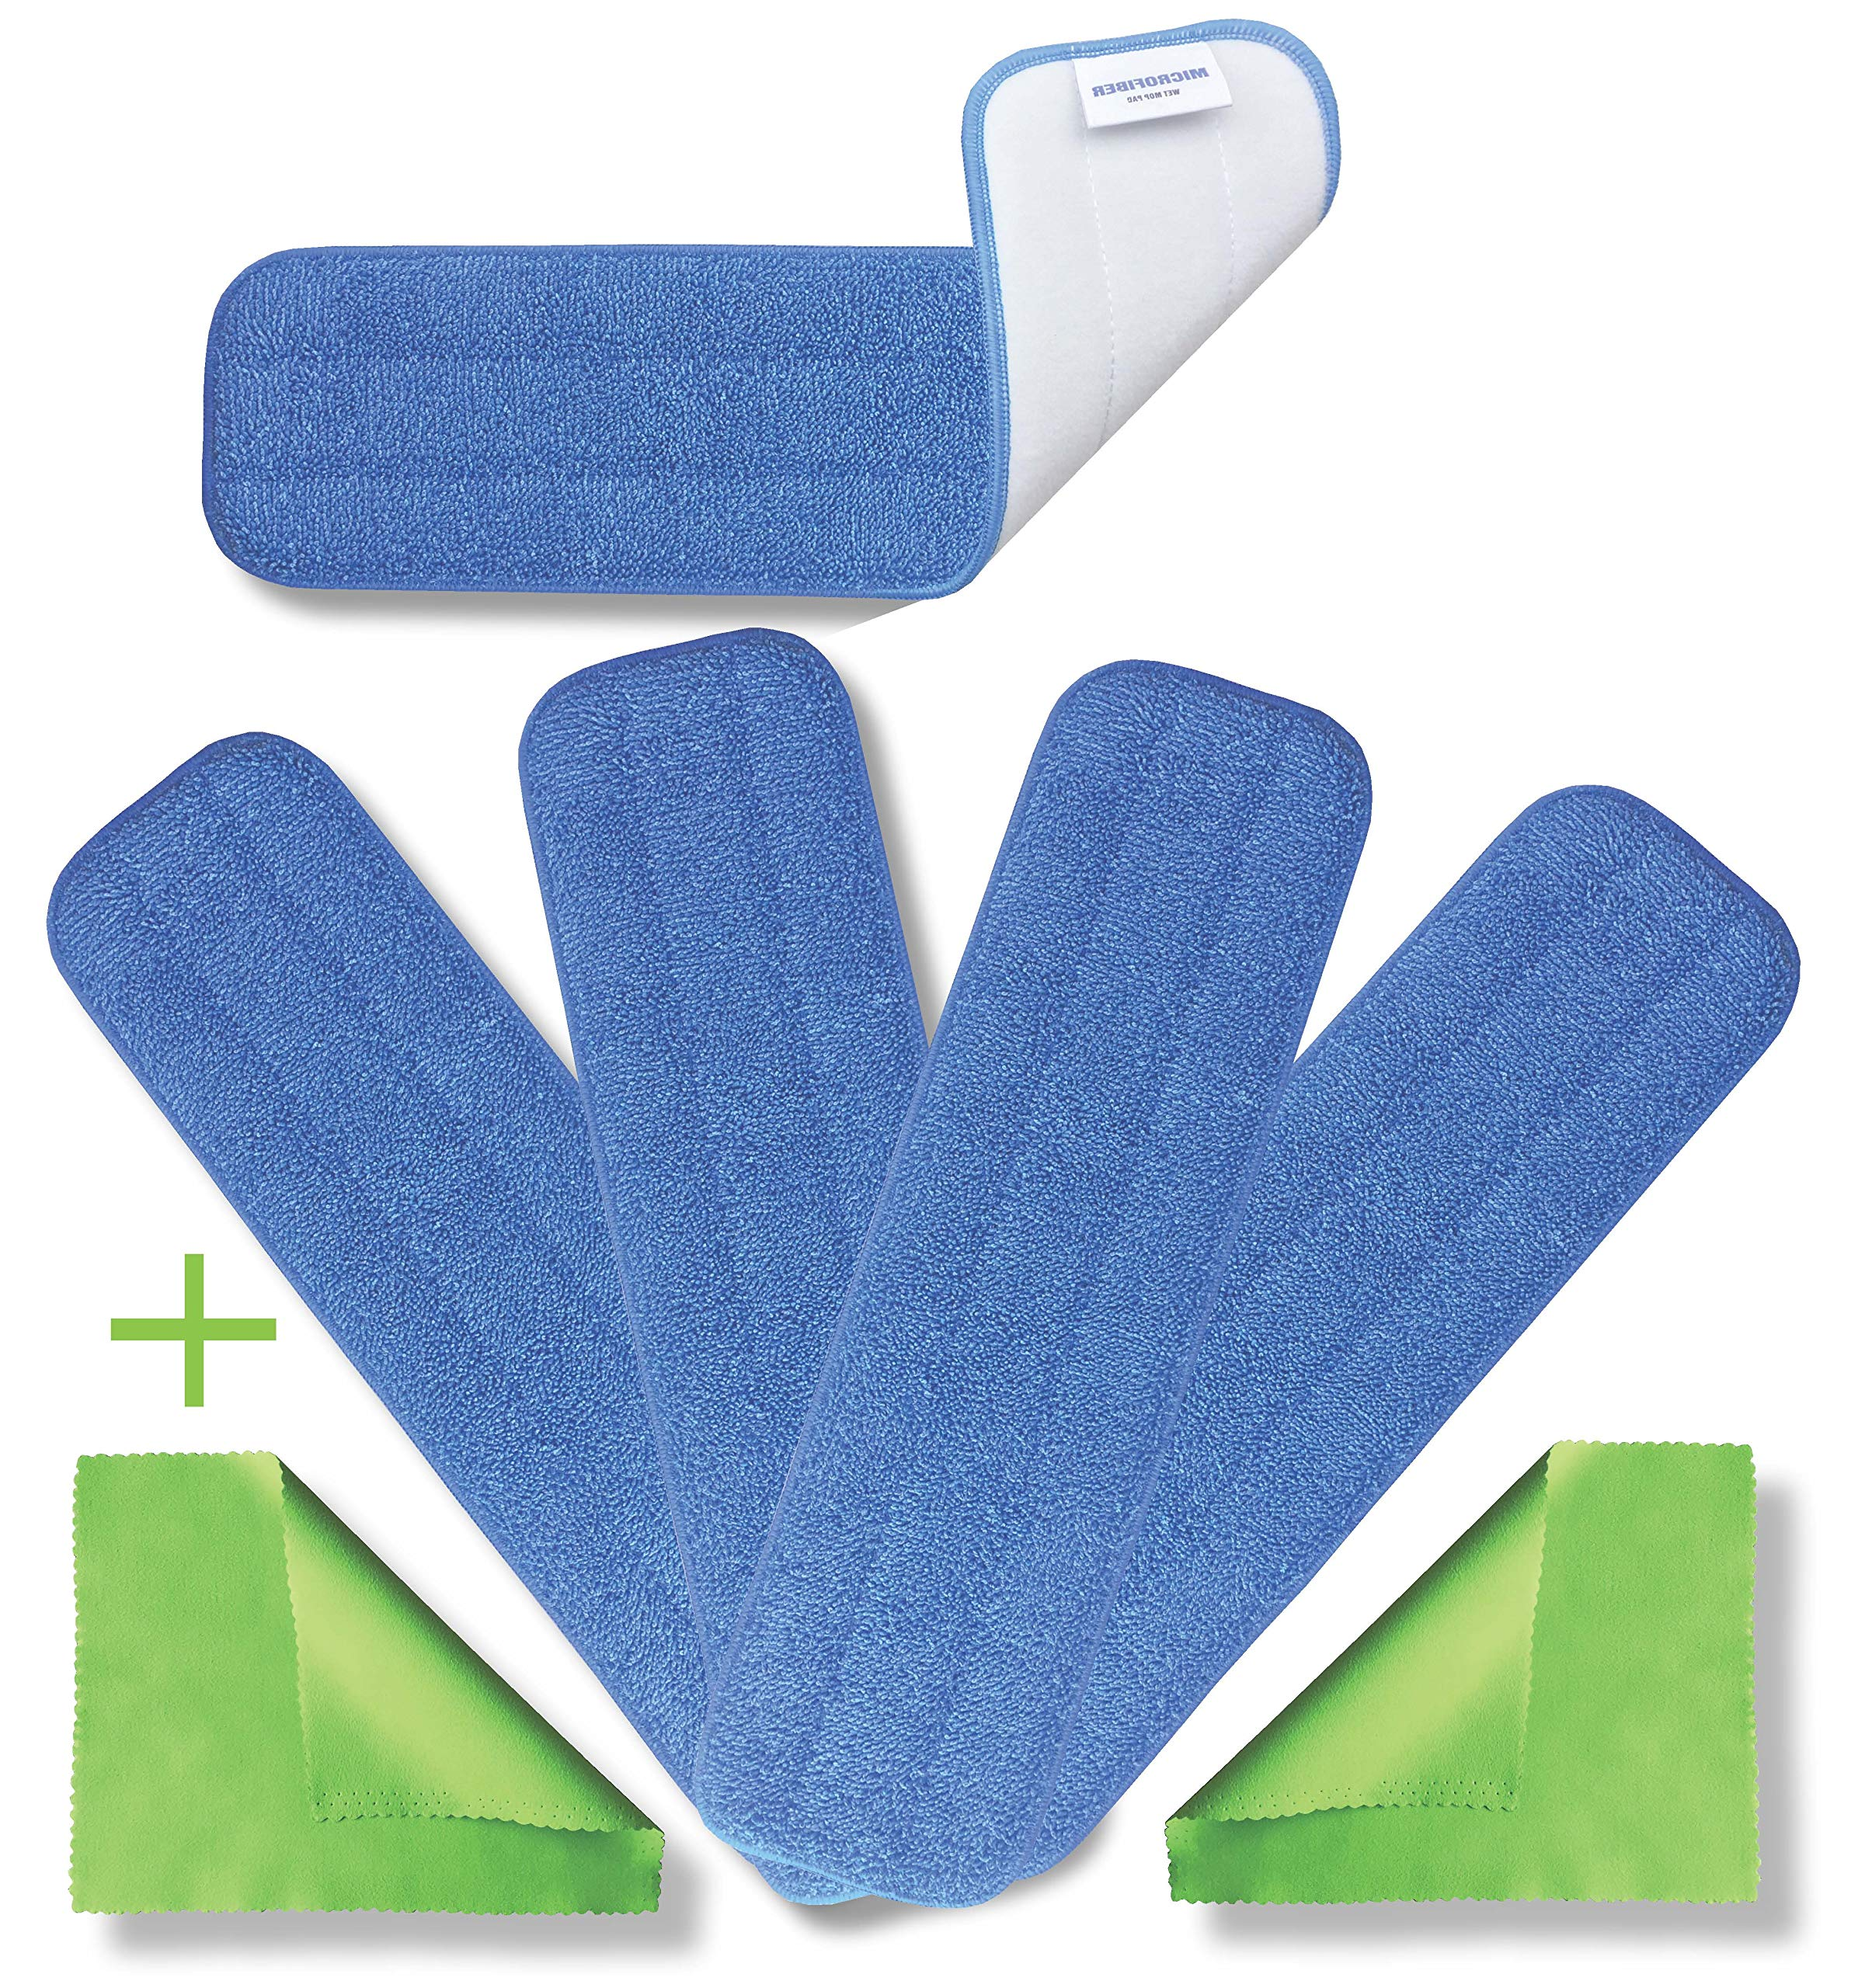 Microfiber Pros Reusable 18'' Mop Pads - 5-Pack with 2 Bonus Cloths - Commercial Grade 450 GSM Flat Replacement Heads for Wet Or Dry Floor Cleaning and Scrubbing by Microfiber Pros